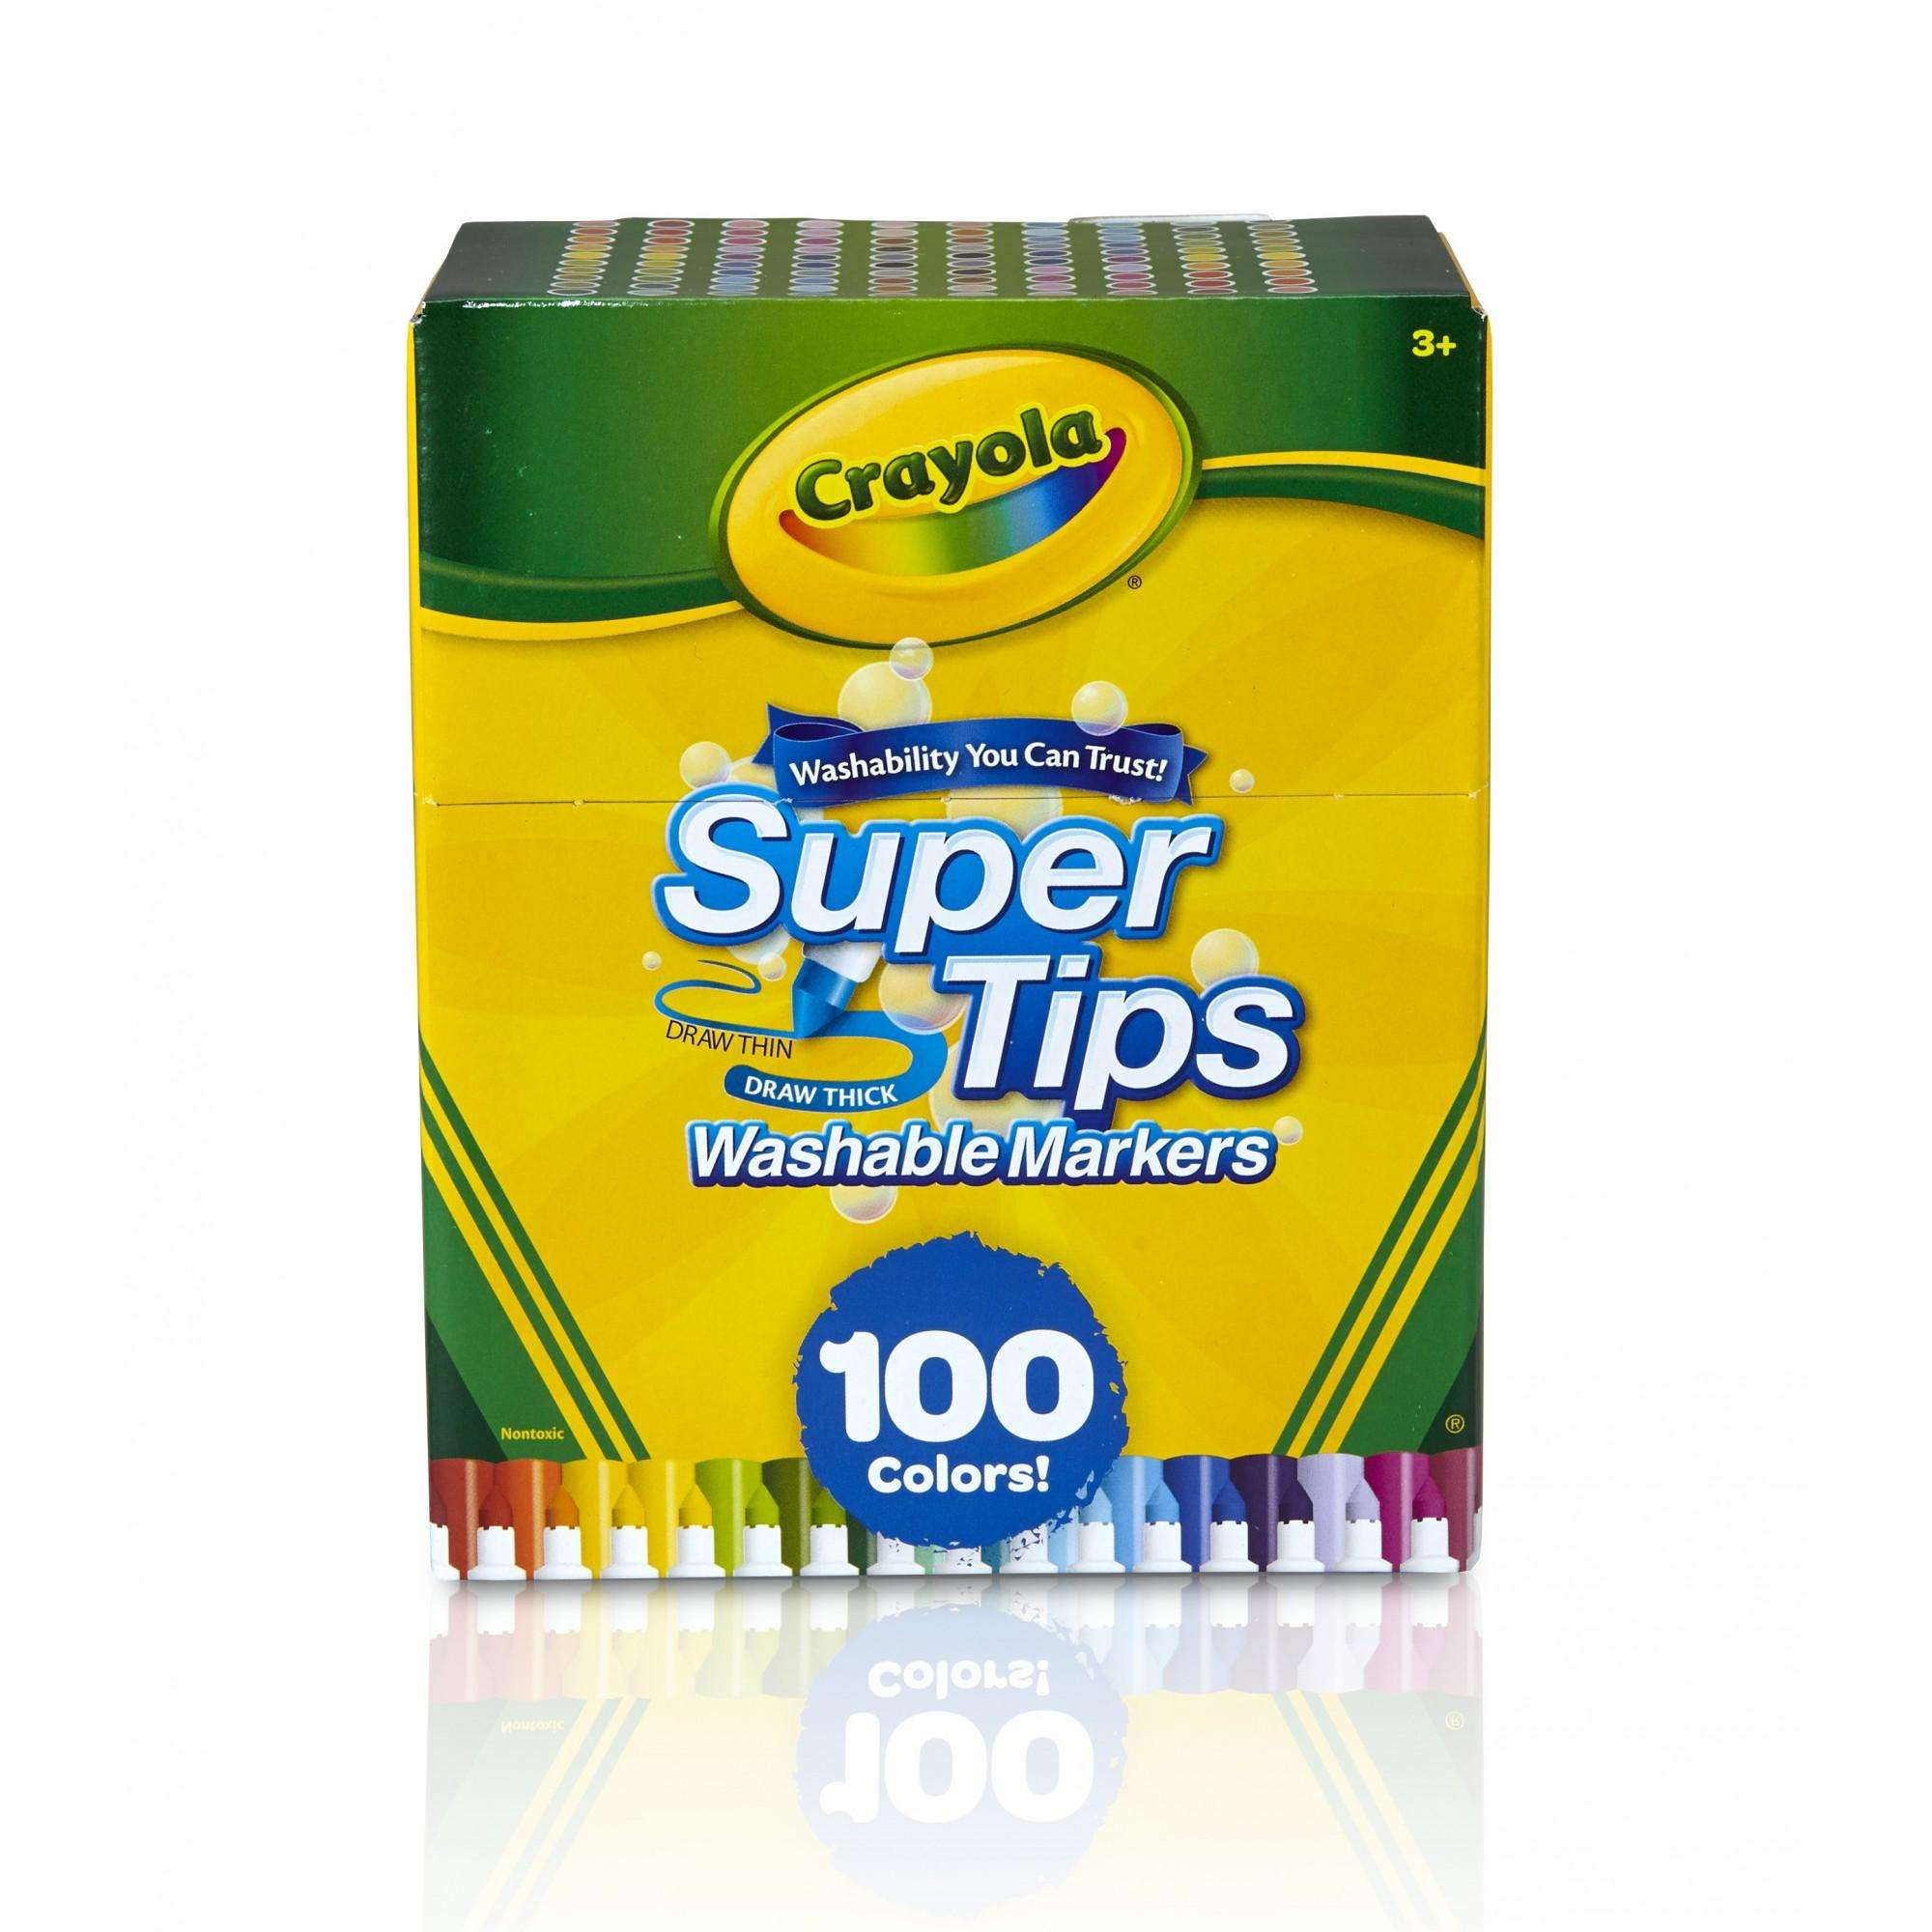 Crayola SuperTips Washable Markers, 100 Count by Crayola